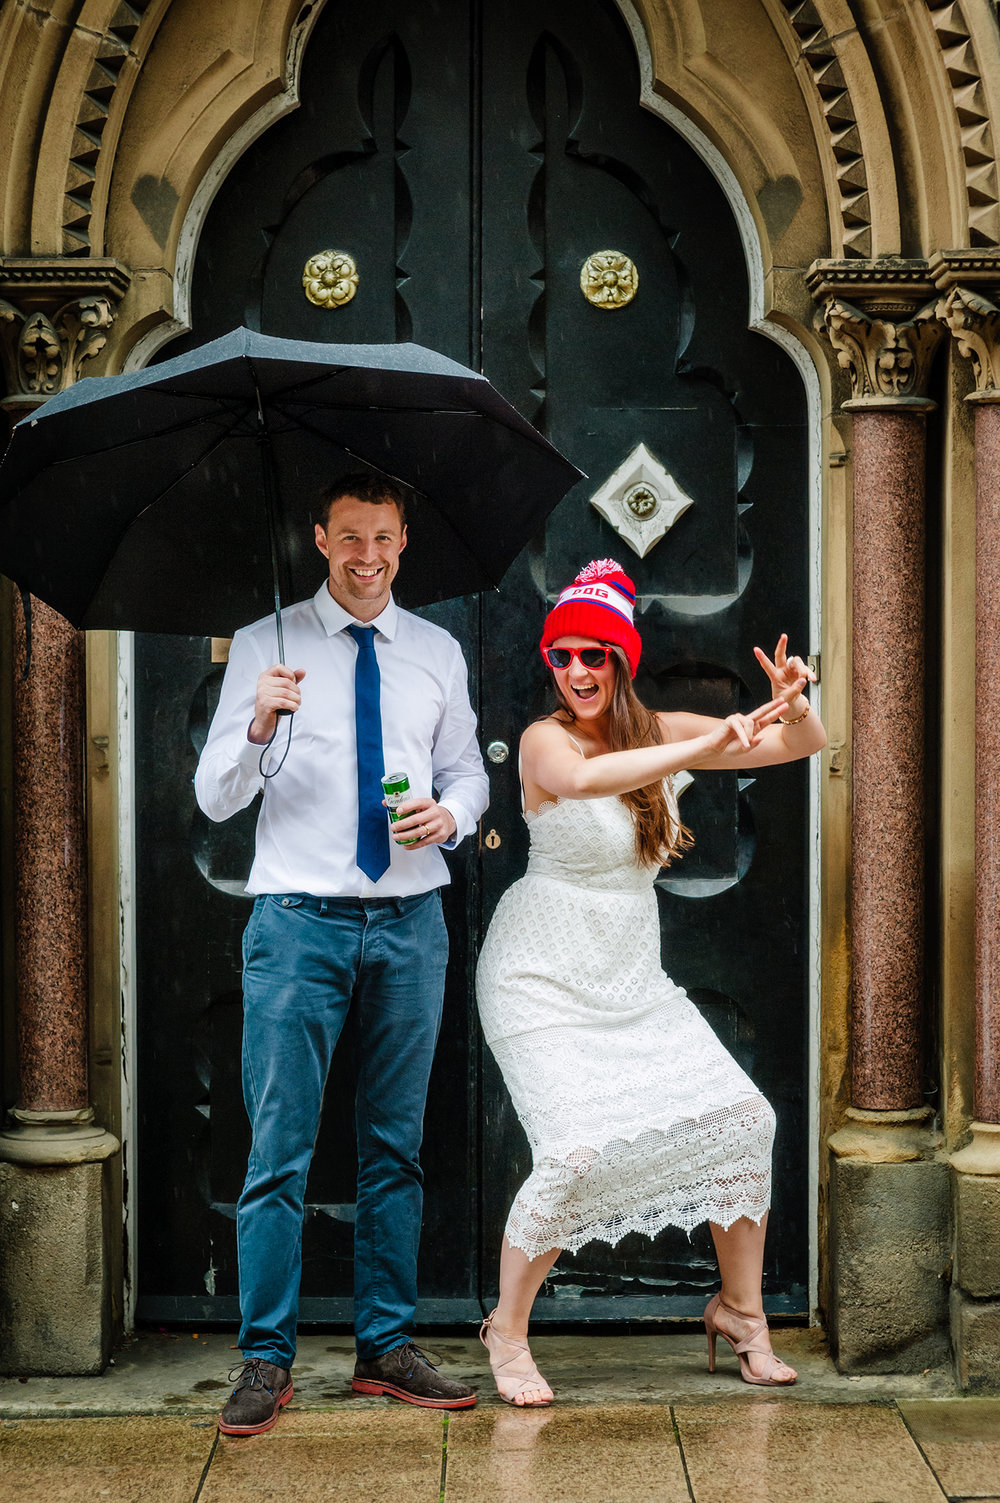 Portrait of wedding portraits by wedding photographers at Ripe Photography in Leeds, England.